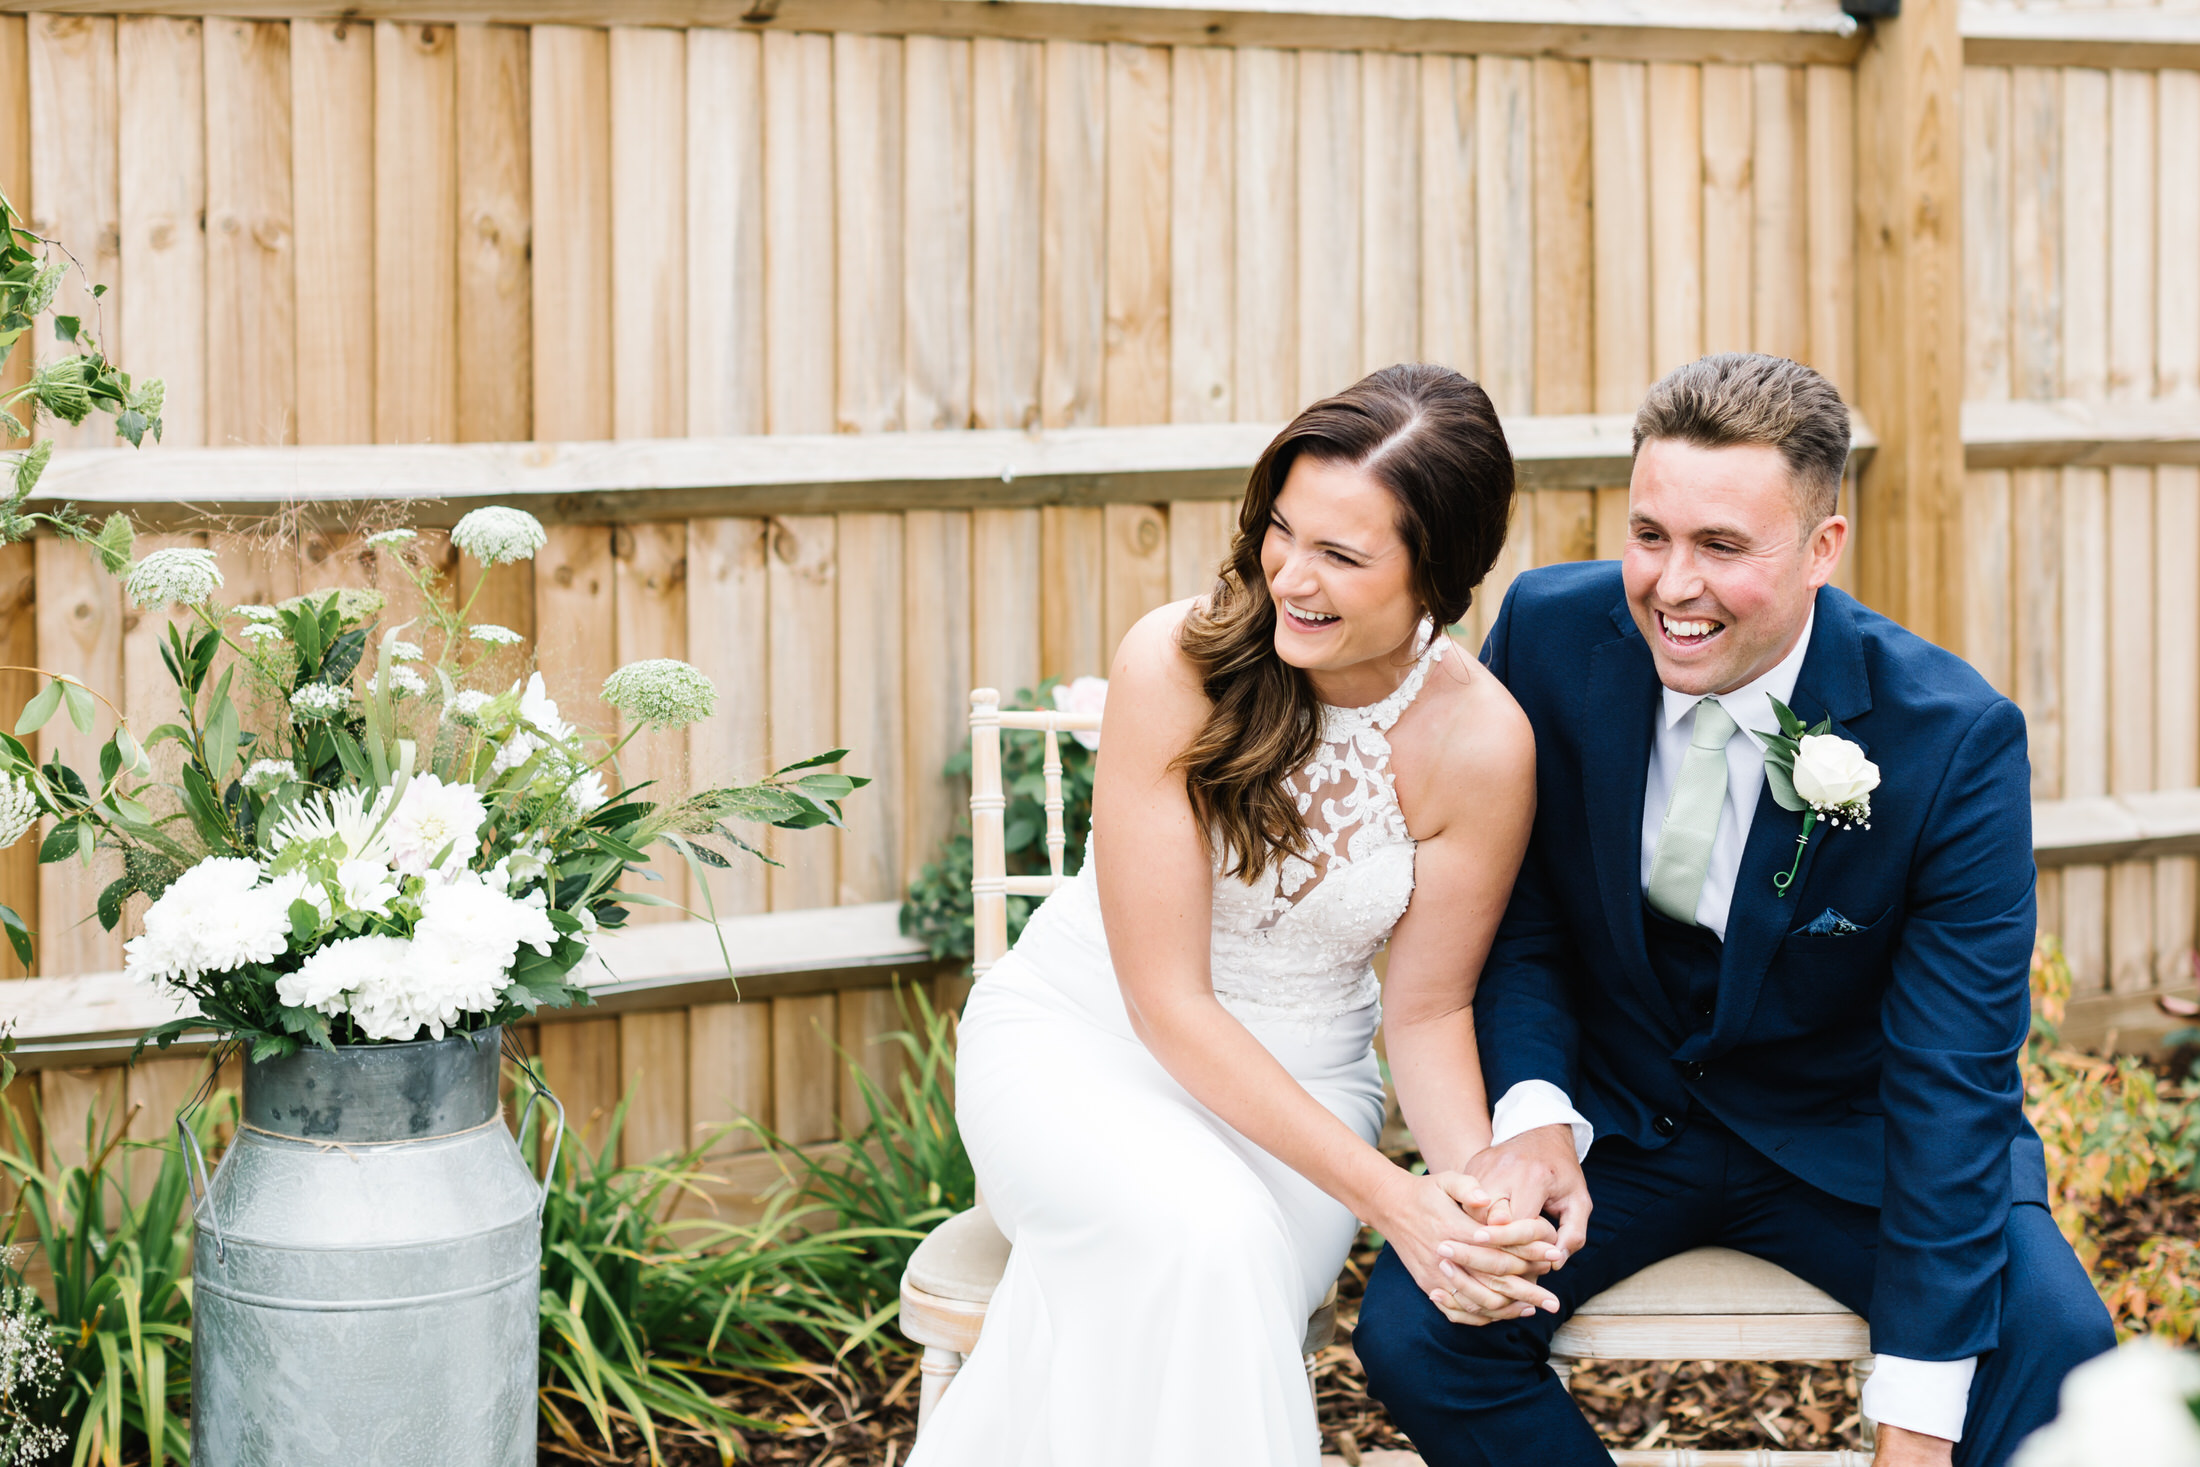 how to plan a back garden wedding couple laughing during ceremony in their garden at home